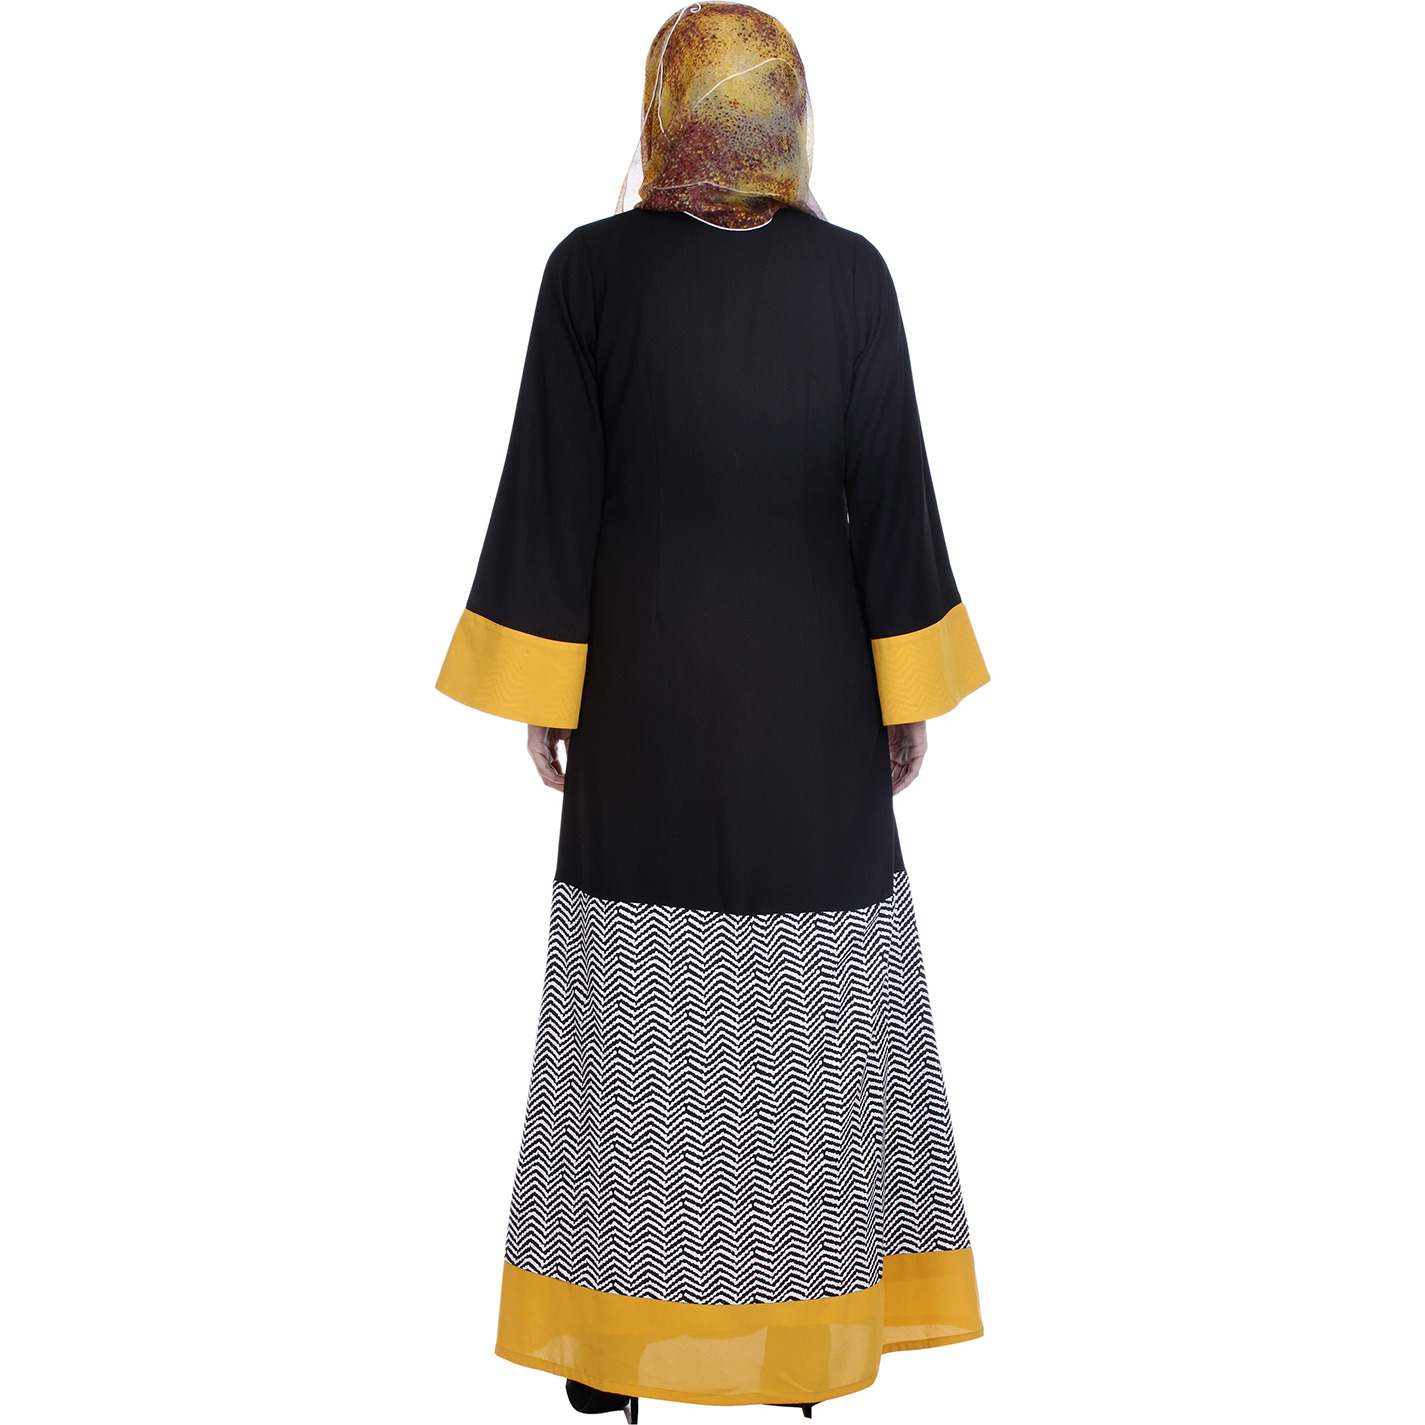 Modest Forever Black Abaya With Yellow Border (Size: L)